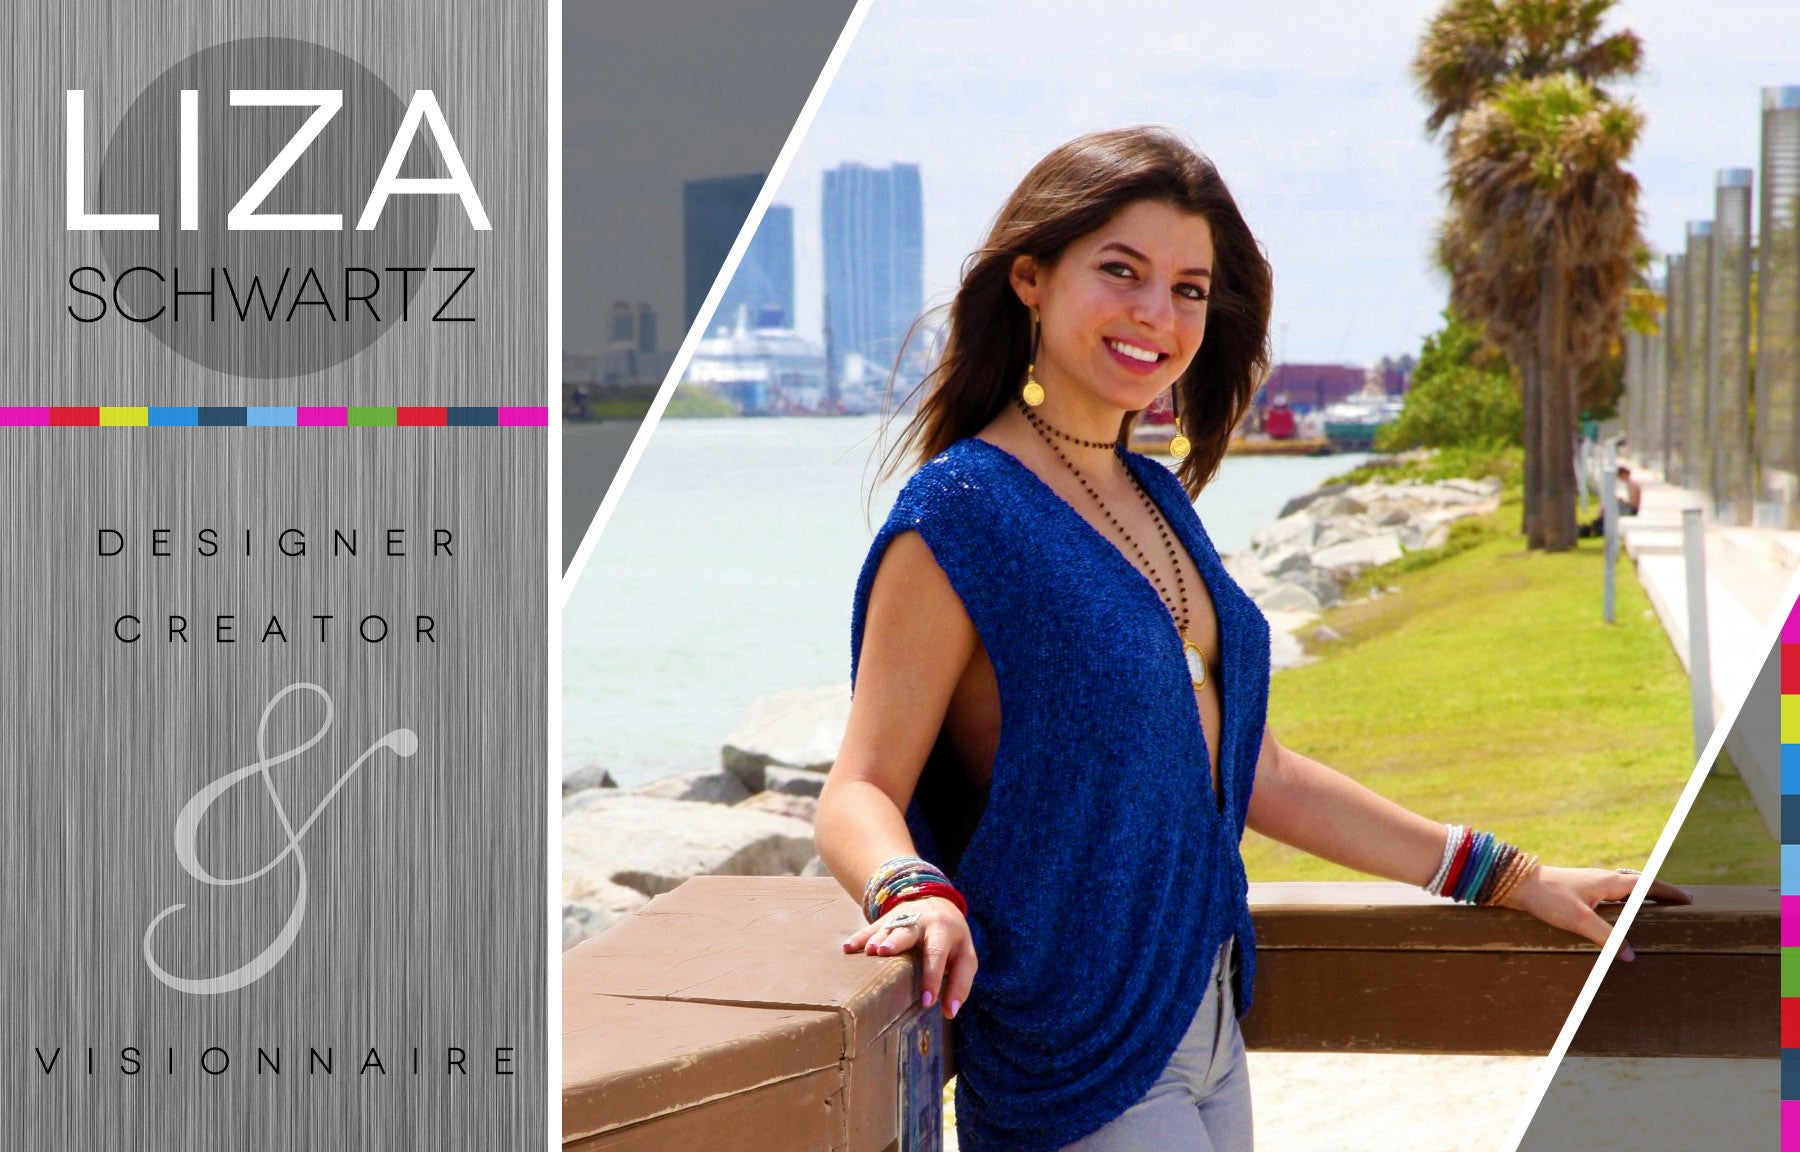 Who is Liza Schwartz?